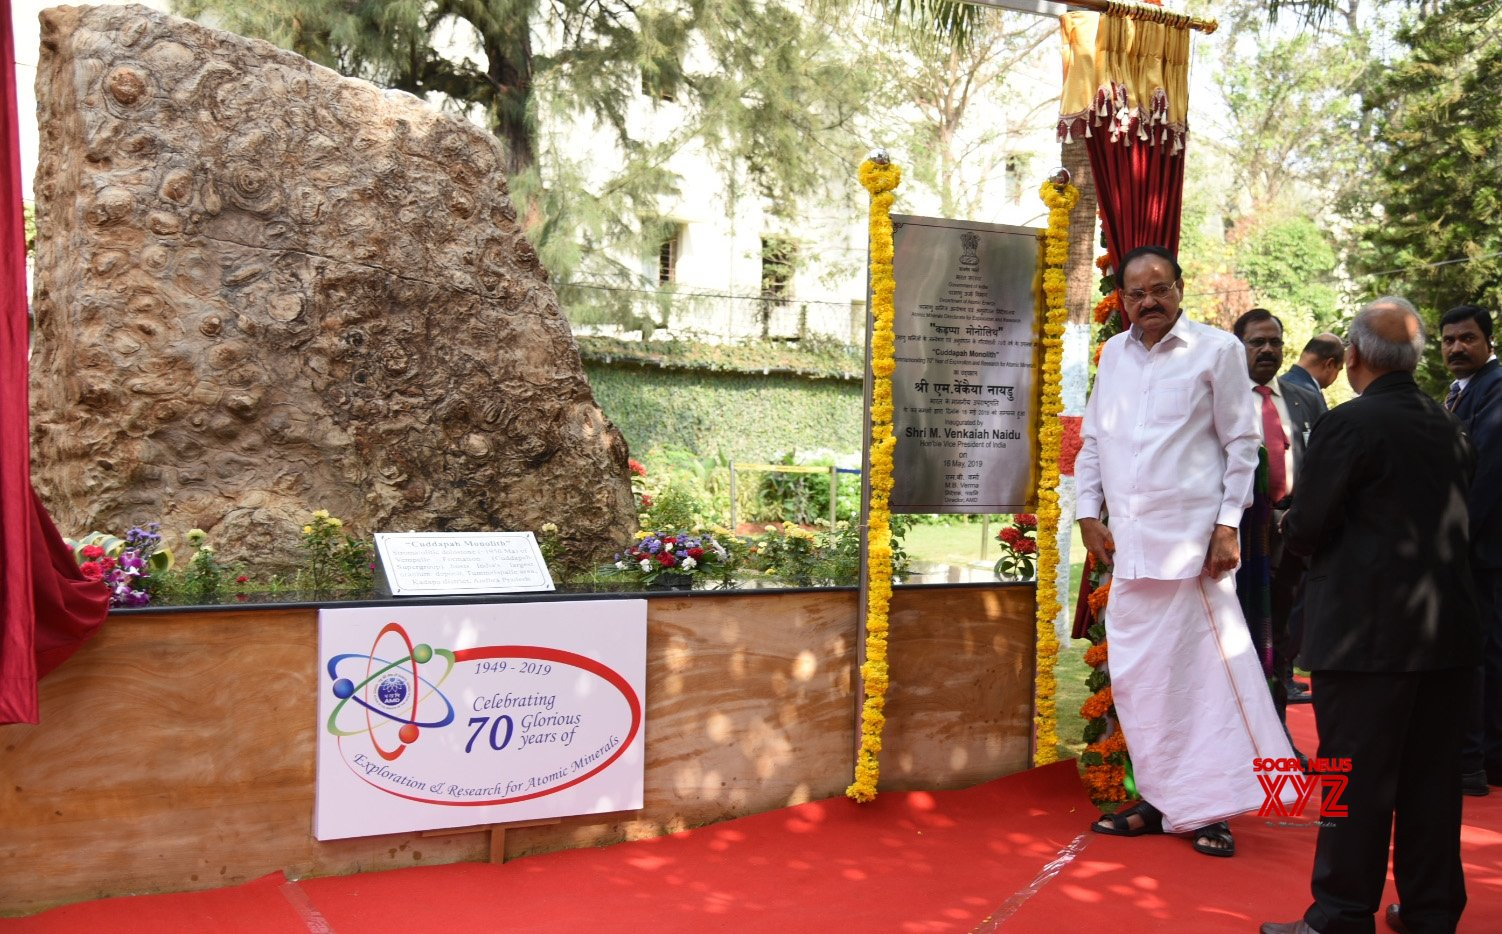 Hyderabad: 70th exploration and research of atomic minerals celebrations - Venkaiah Naidu #Gallery